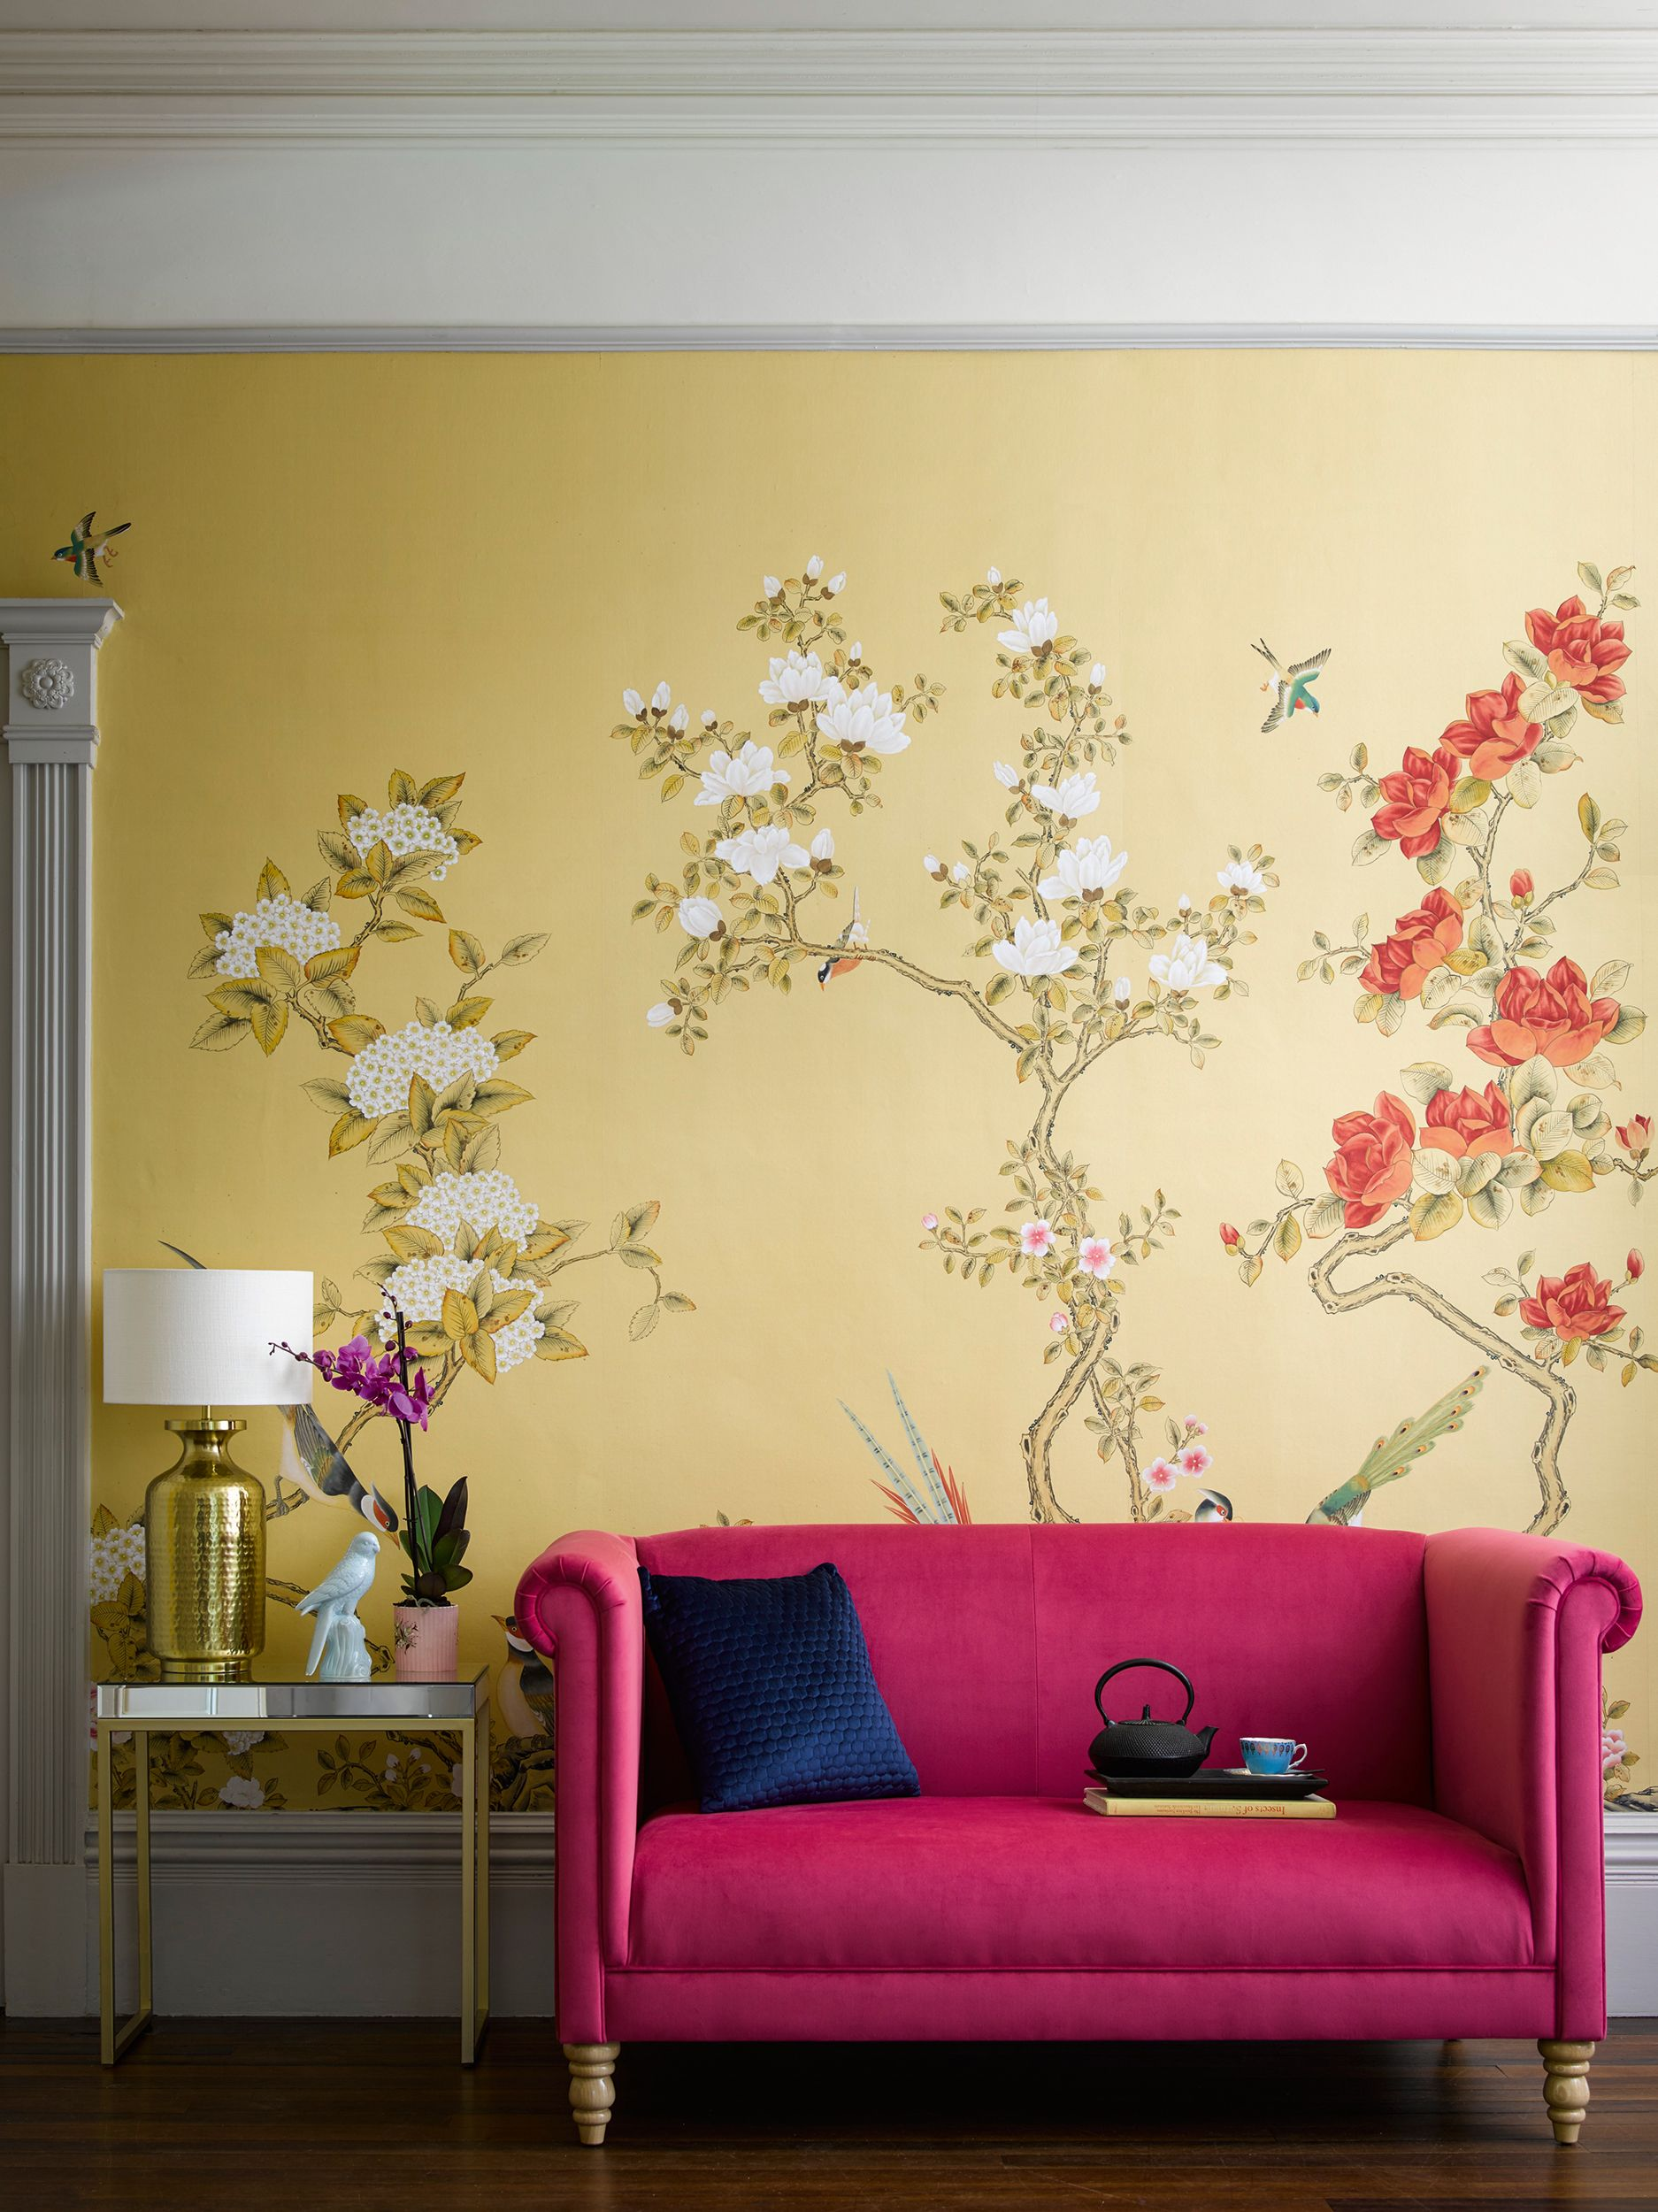 24 Yellow Room Ideas Perfect For Spring Yellow Room Yellow Living Room Colourful Living Room Yellow background living room